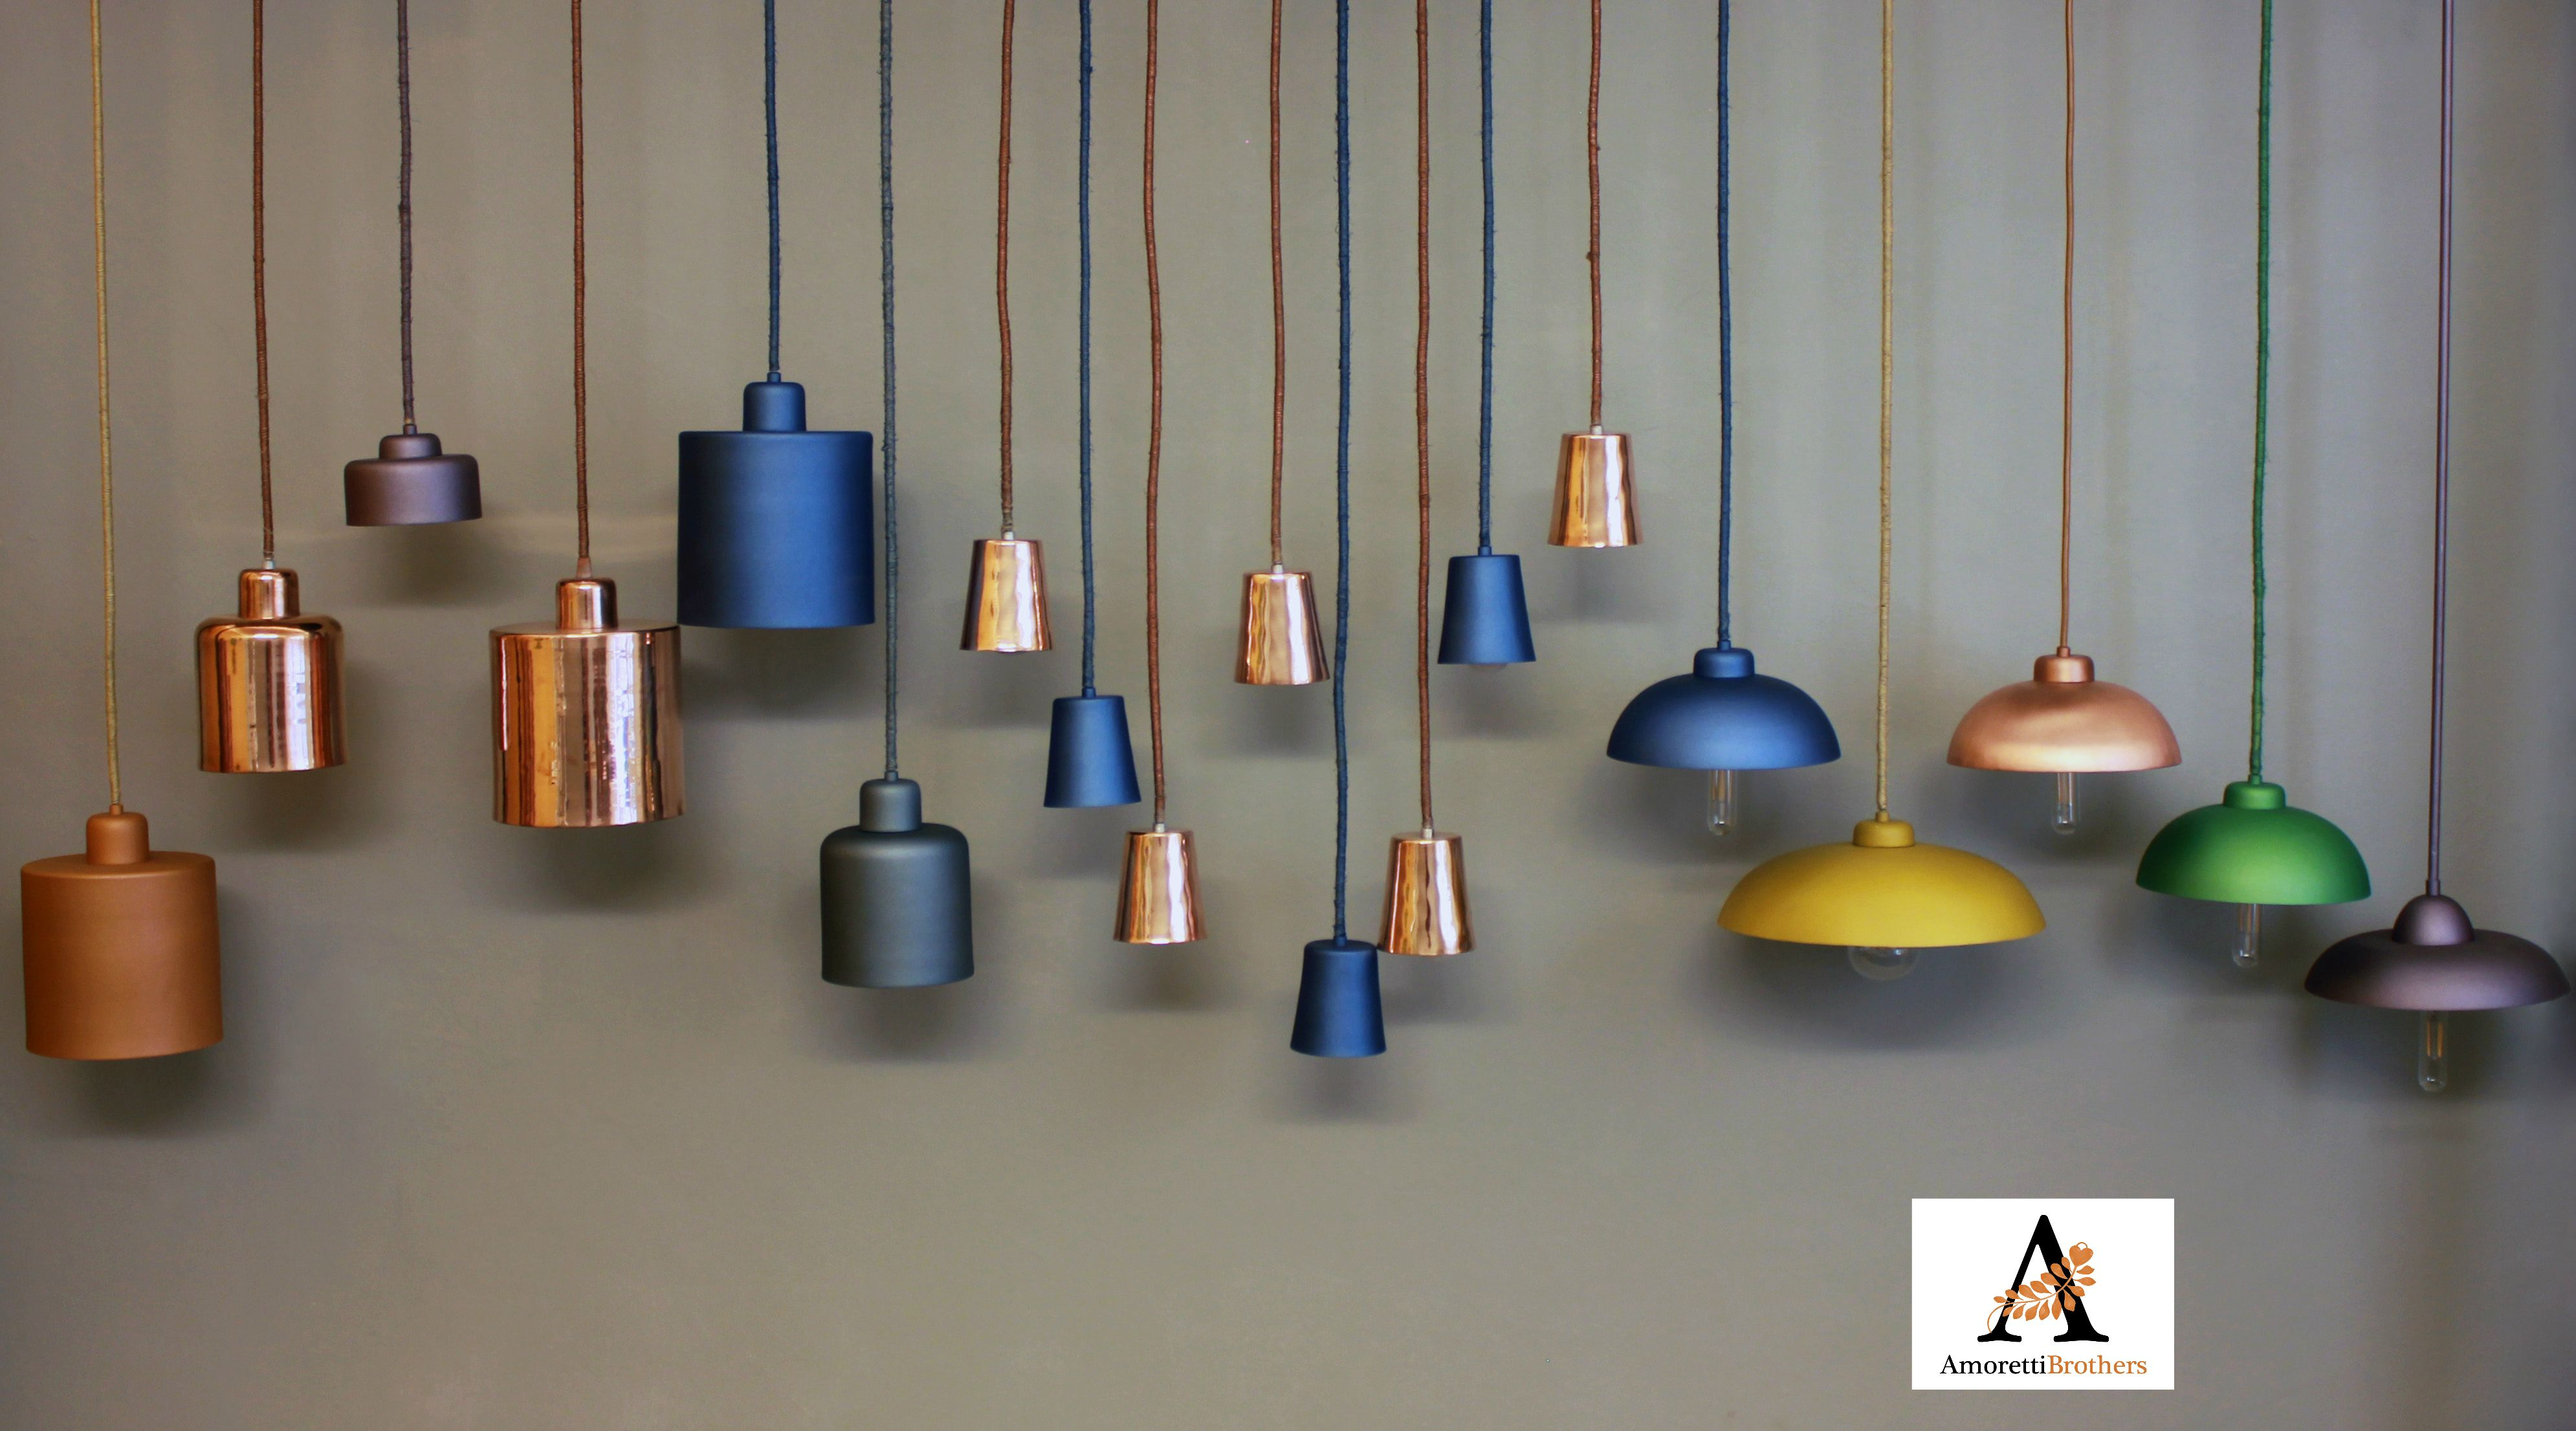 A Selection Of Amoretti Brothers Decorative Lightings